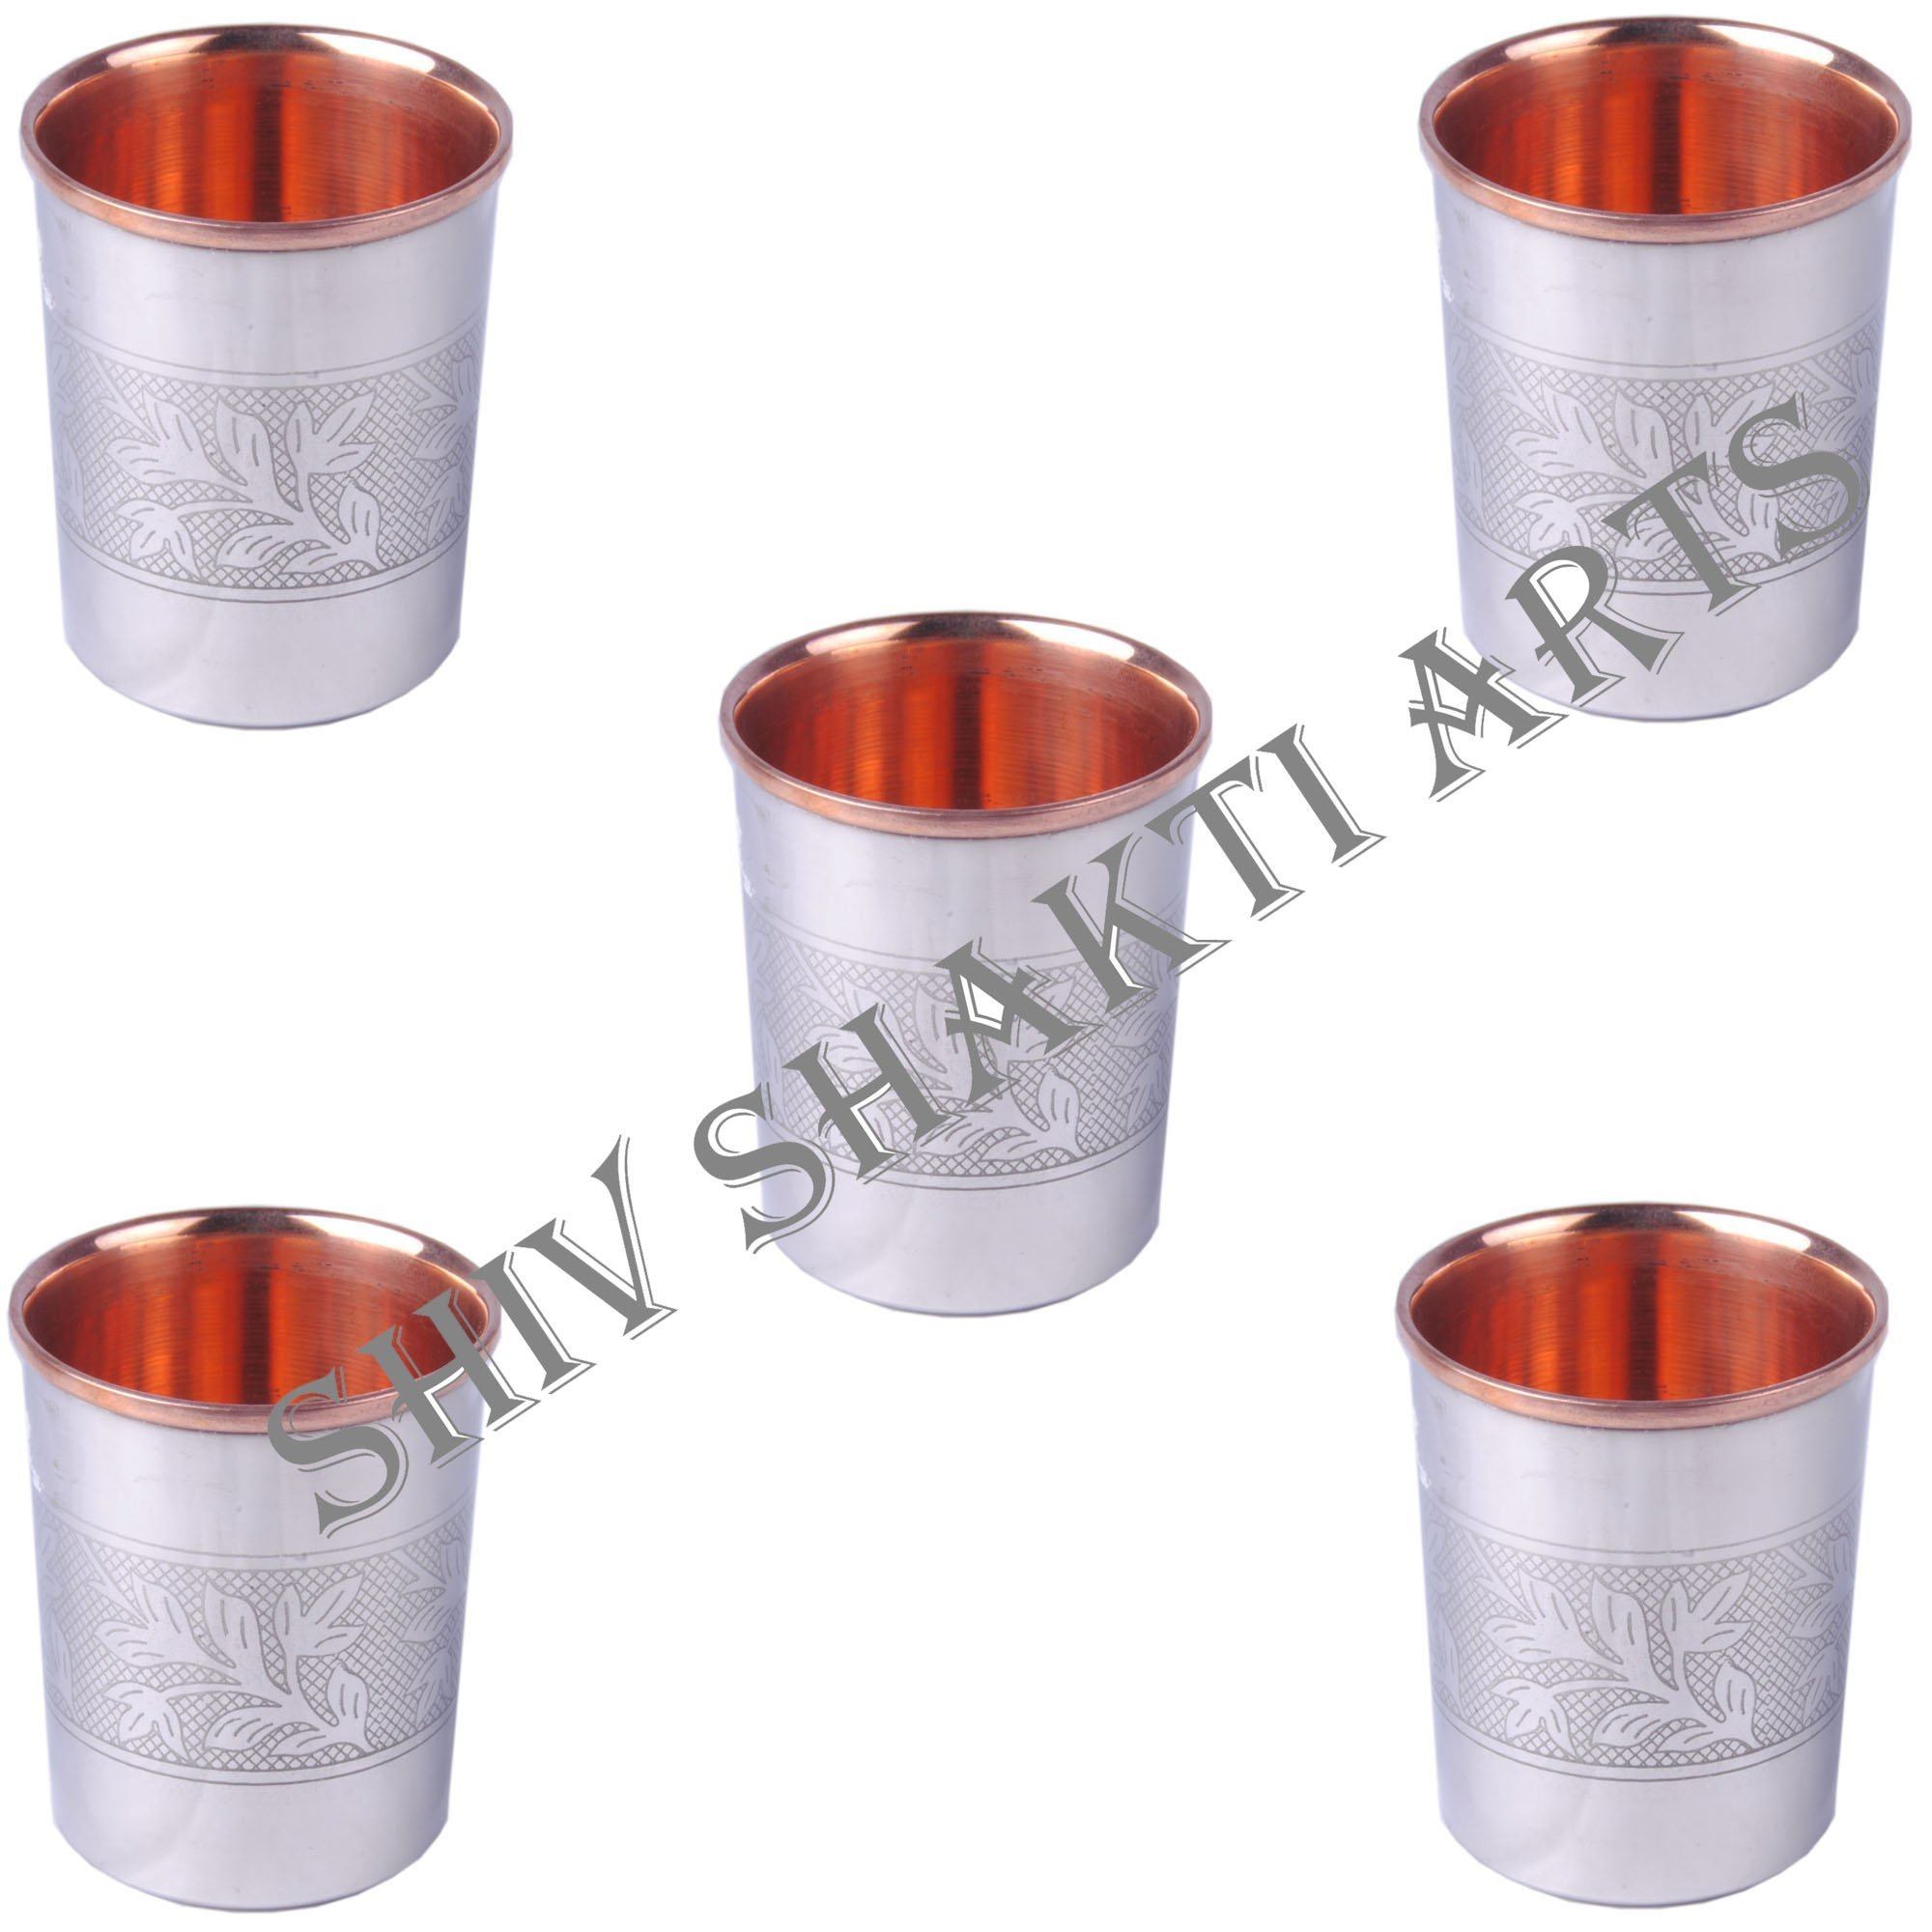 SHIV SHAKTI ARTS 3.5'' X 2.8'' Set Of 5 Handmade Solid Copper Stainless Stainless Steel Designer Glass Cup Volume 250 Ml For Use Drinking Water Restaurant Home Hotel Garden Ware Good Health Benefits